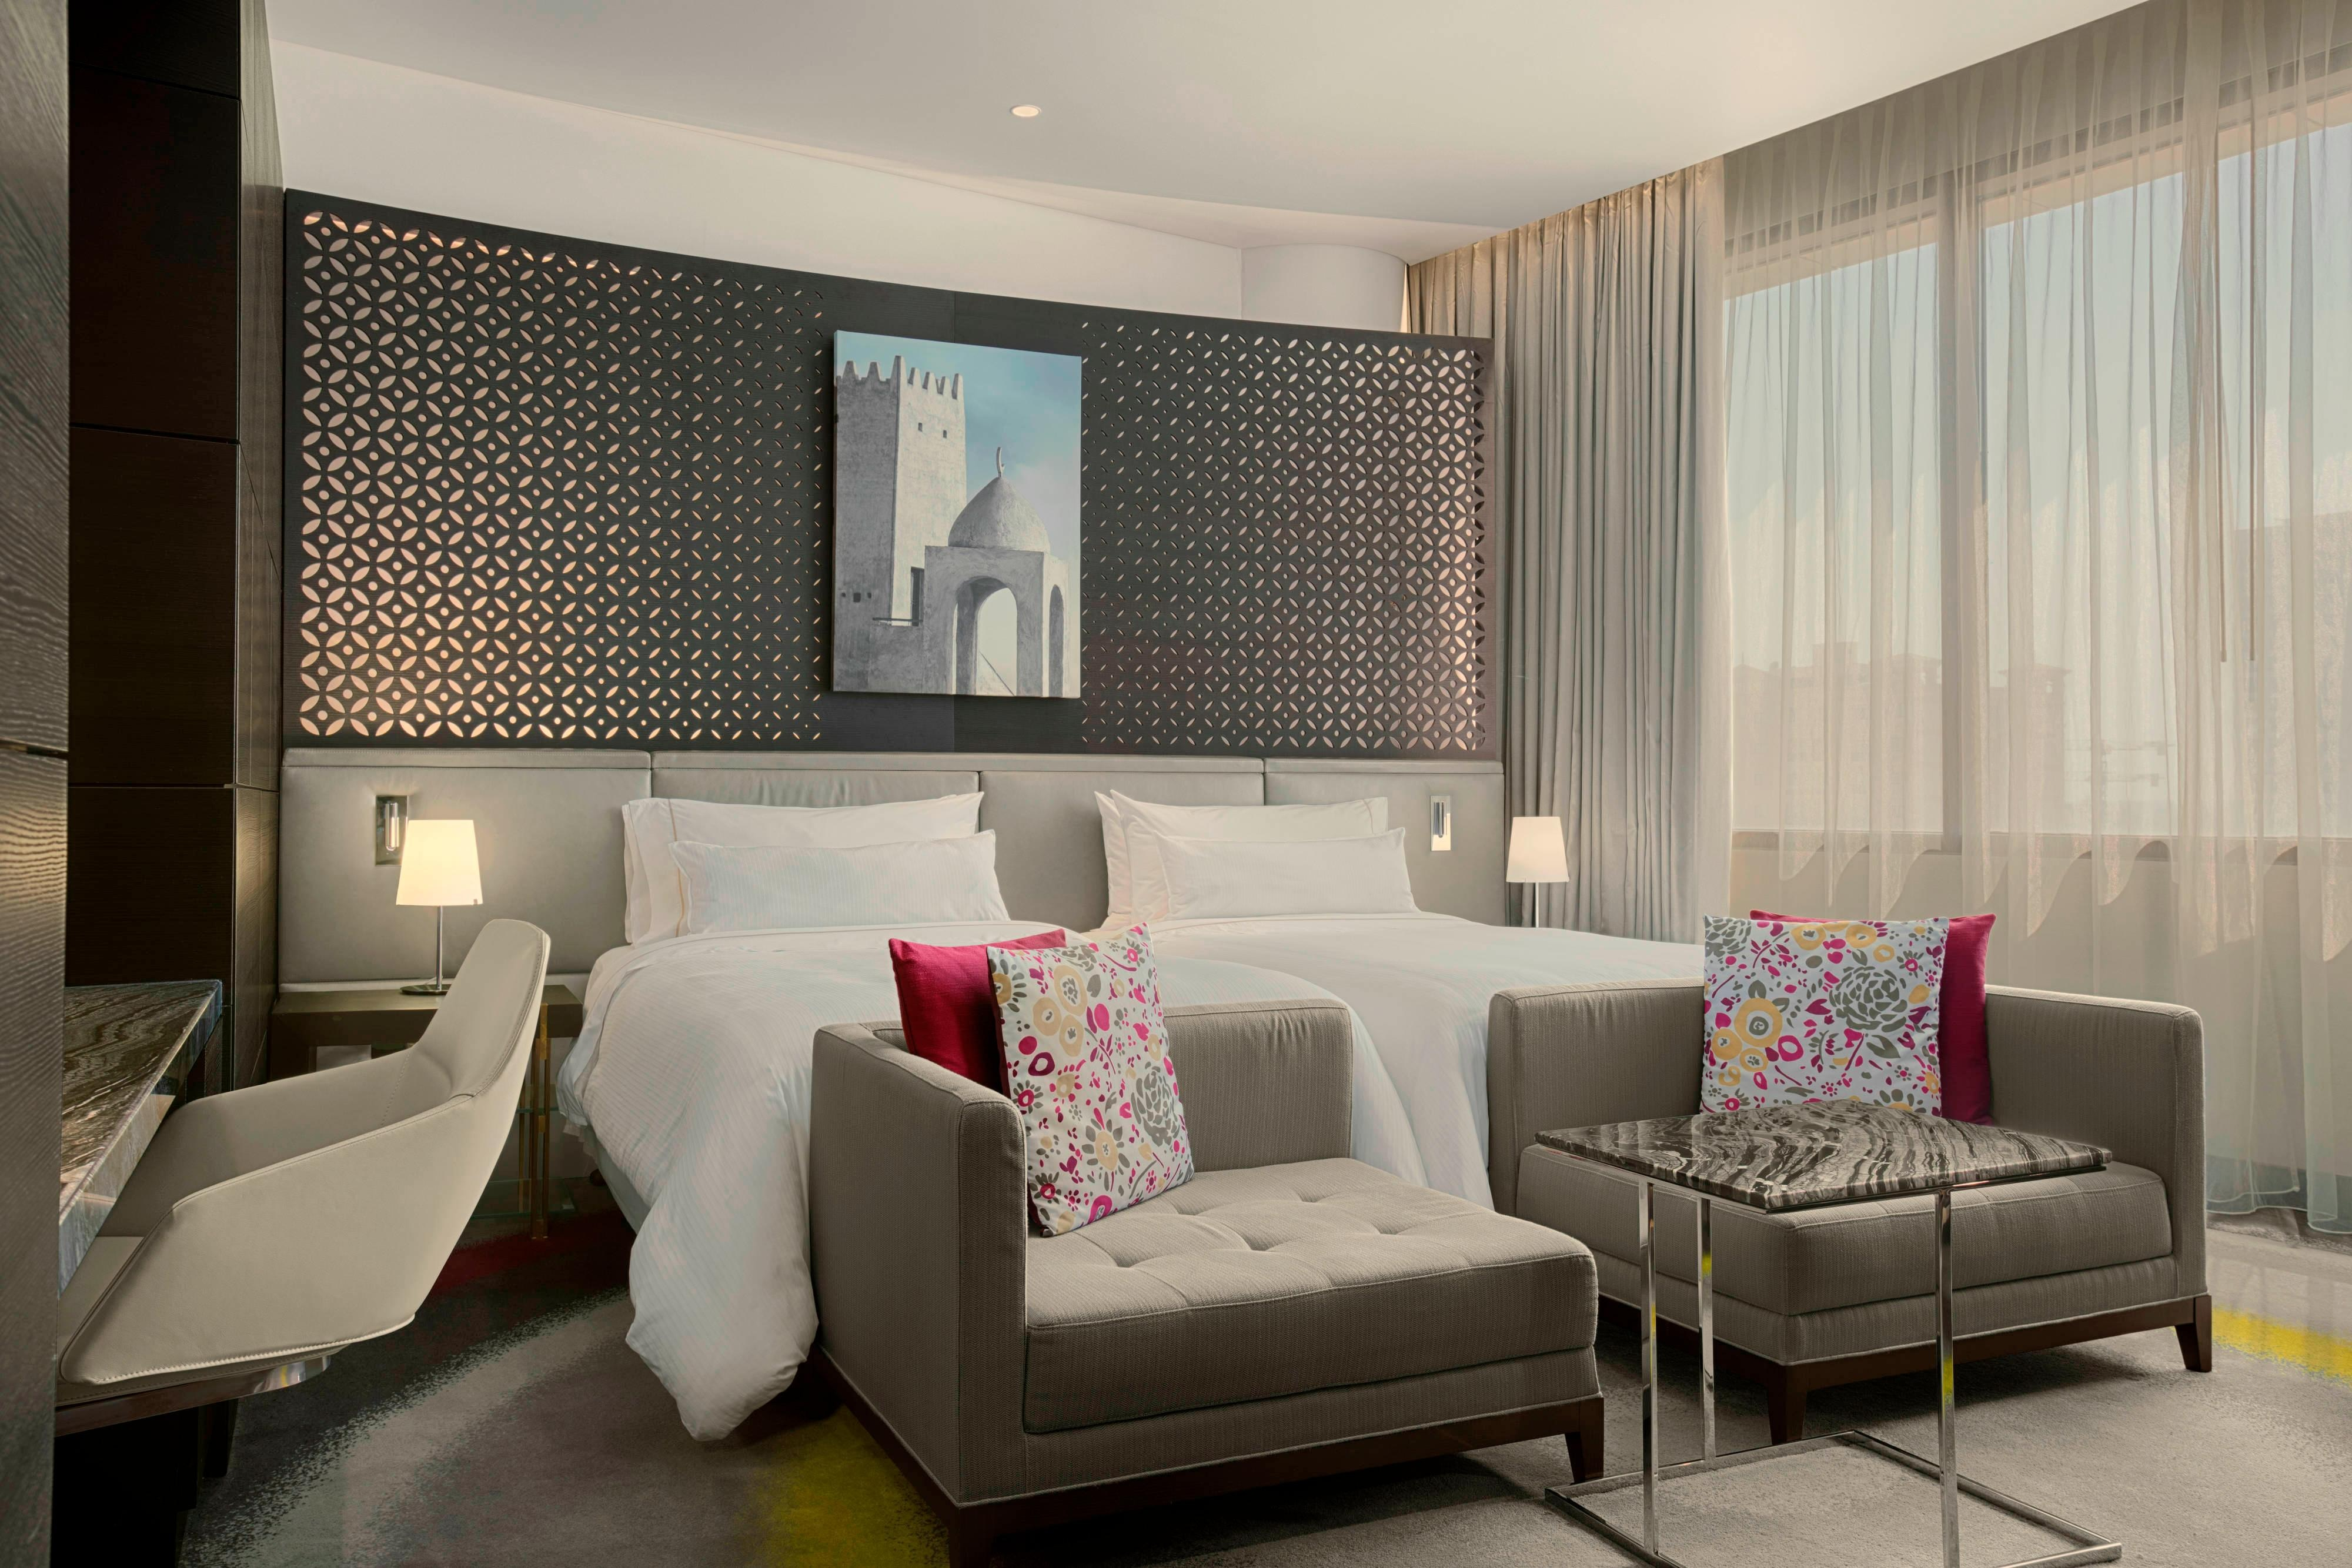 Designed with total wellness in mind, each generously sized Deluxe room provides the perfect retreat for the business or leisure traveler.